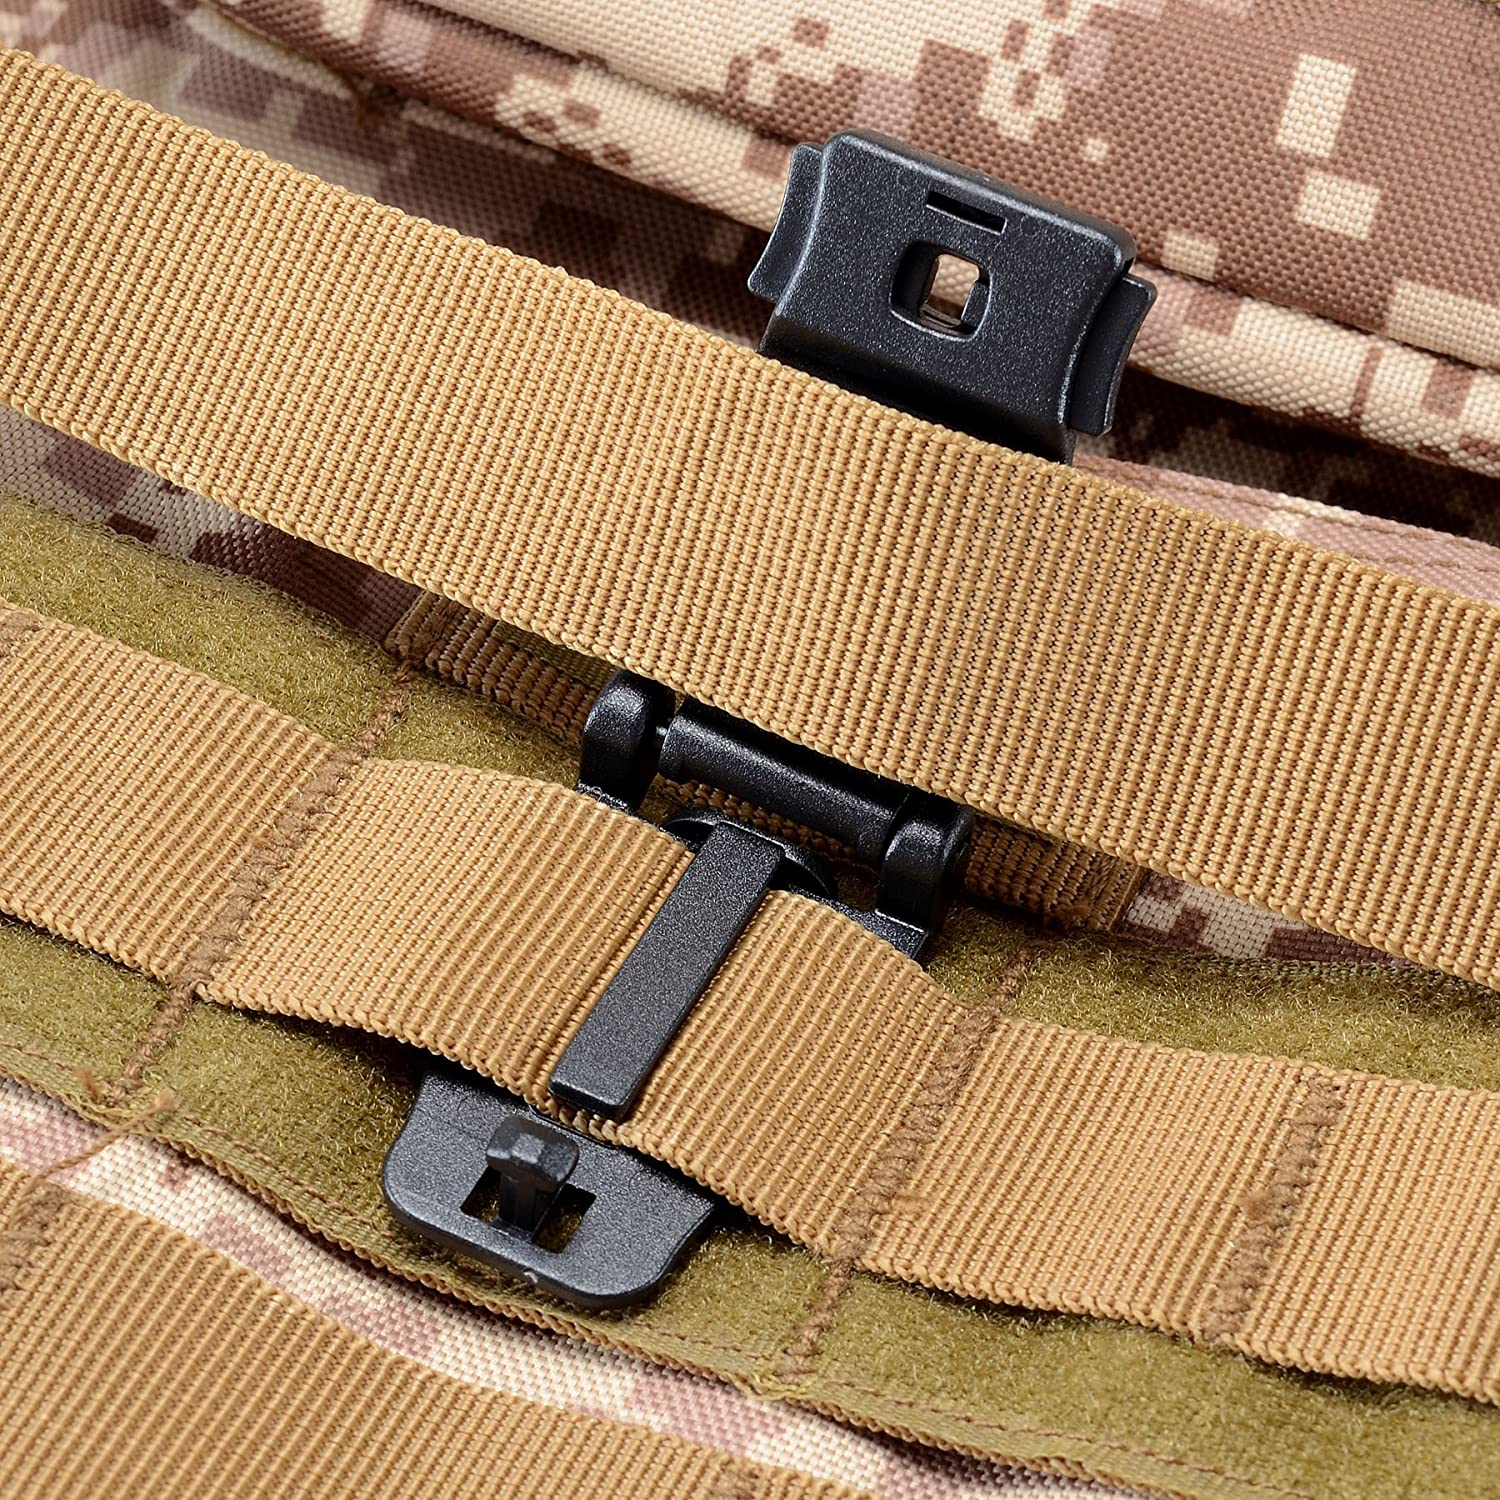 Pistol Magazine Storage Pouch Raiseek Molle 8 Mag Pouch with Cover